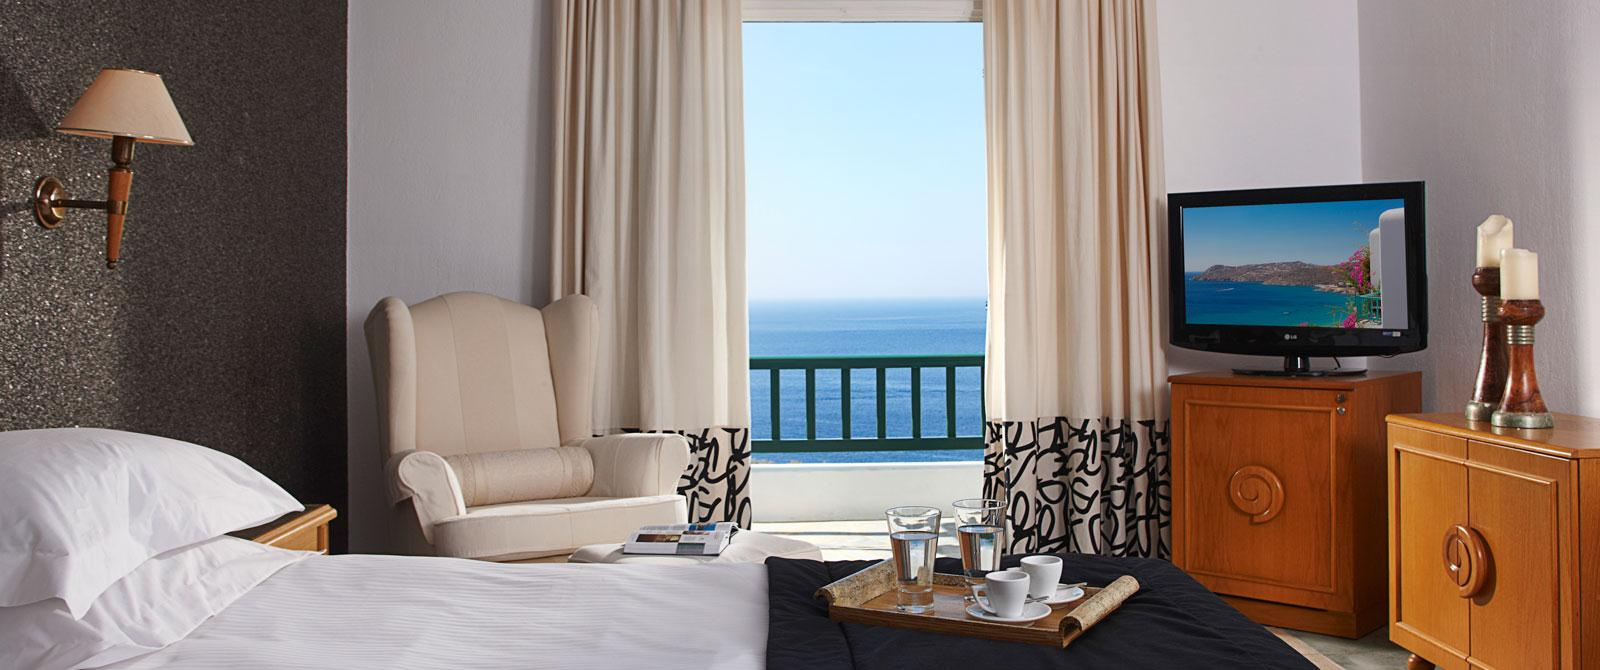 Royal Myconian-Deluxe Double Room